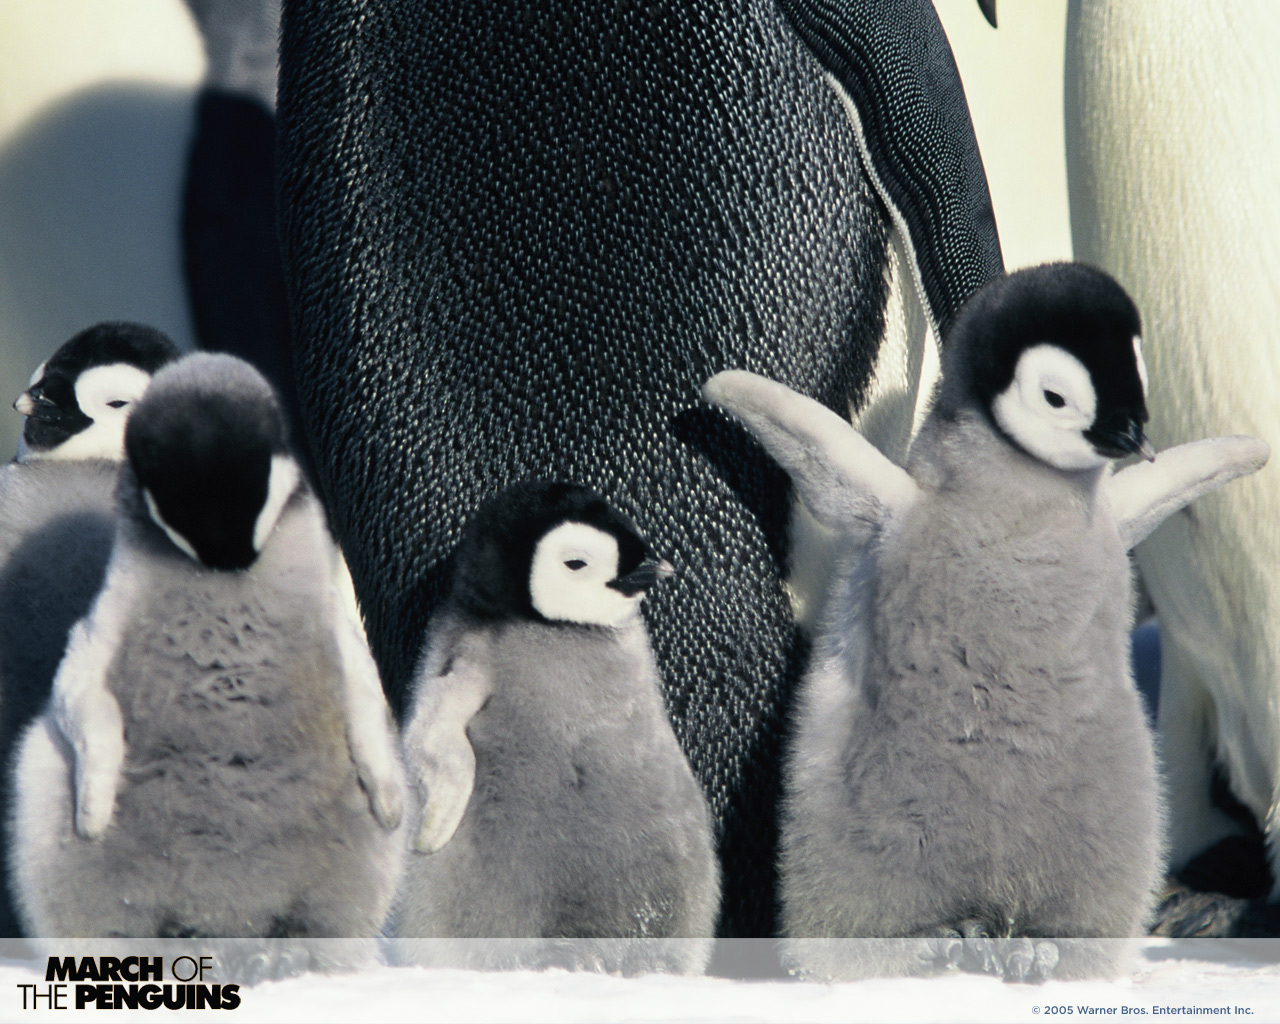 March of the penguins 5